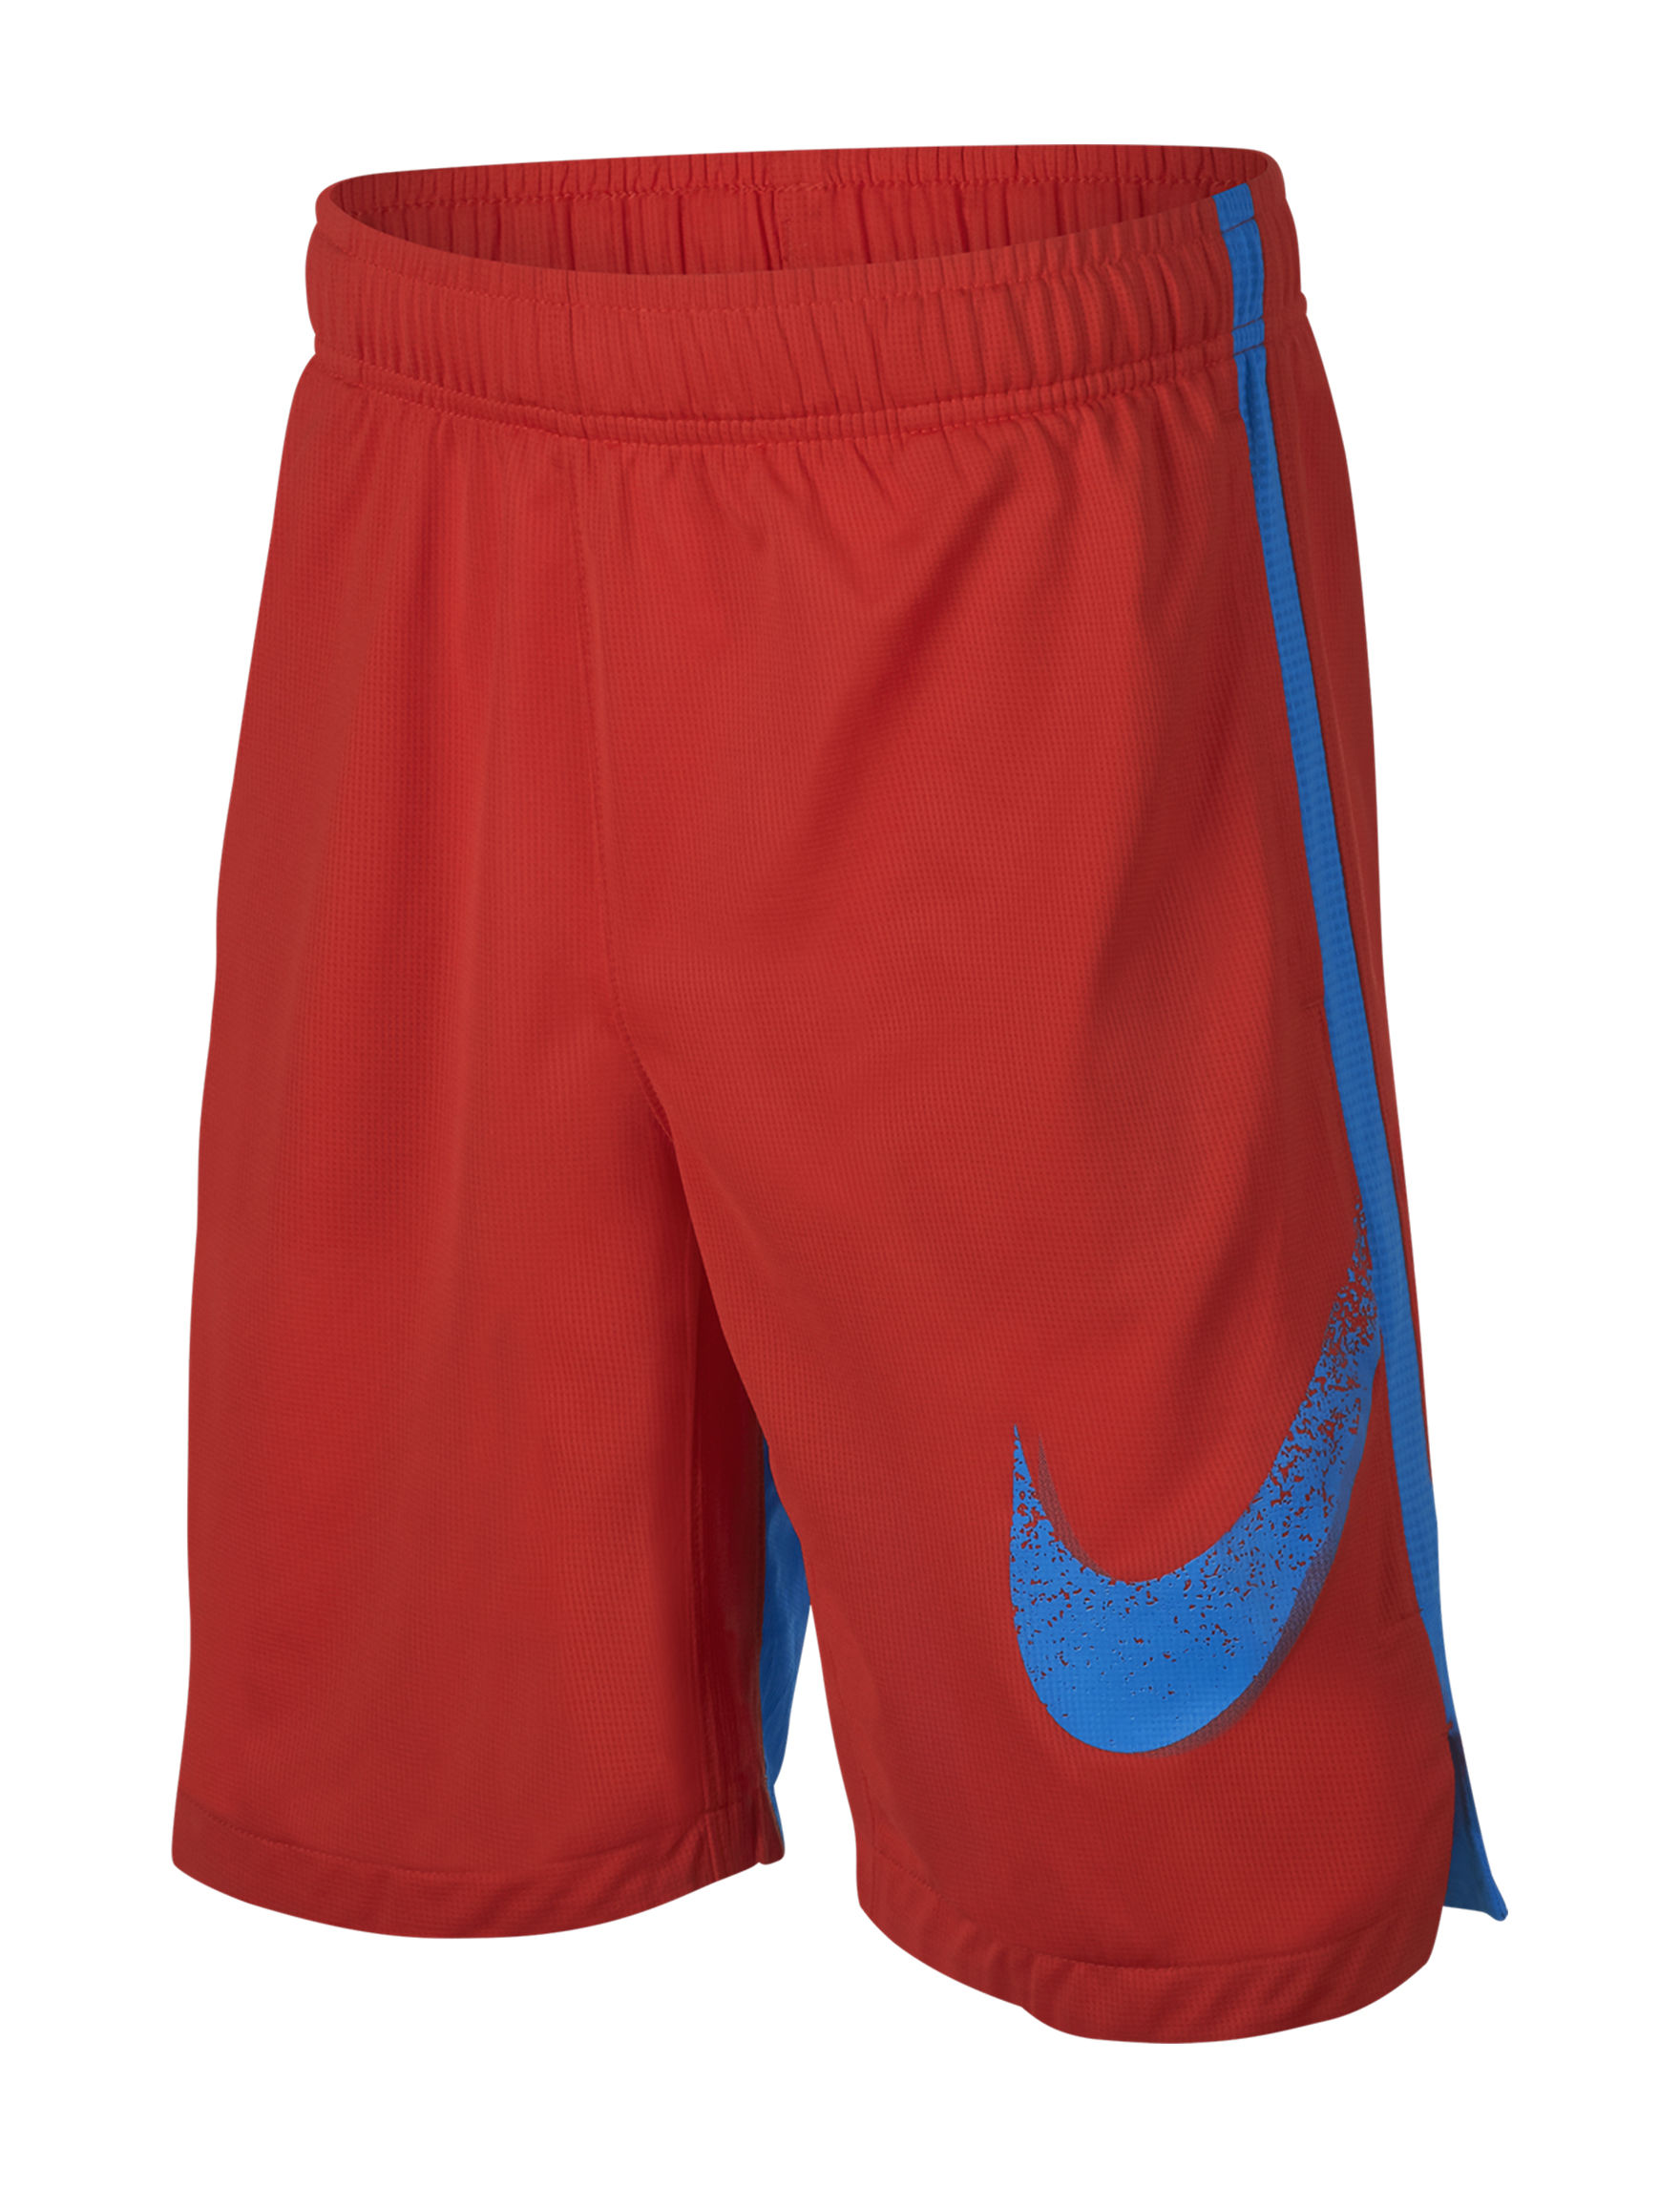 Nike Red / Blue Loose